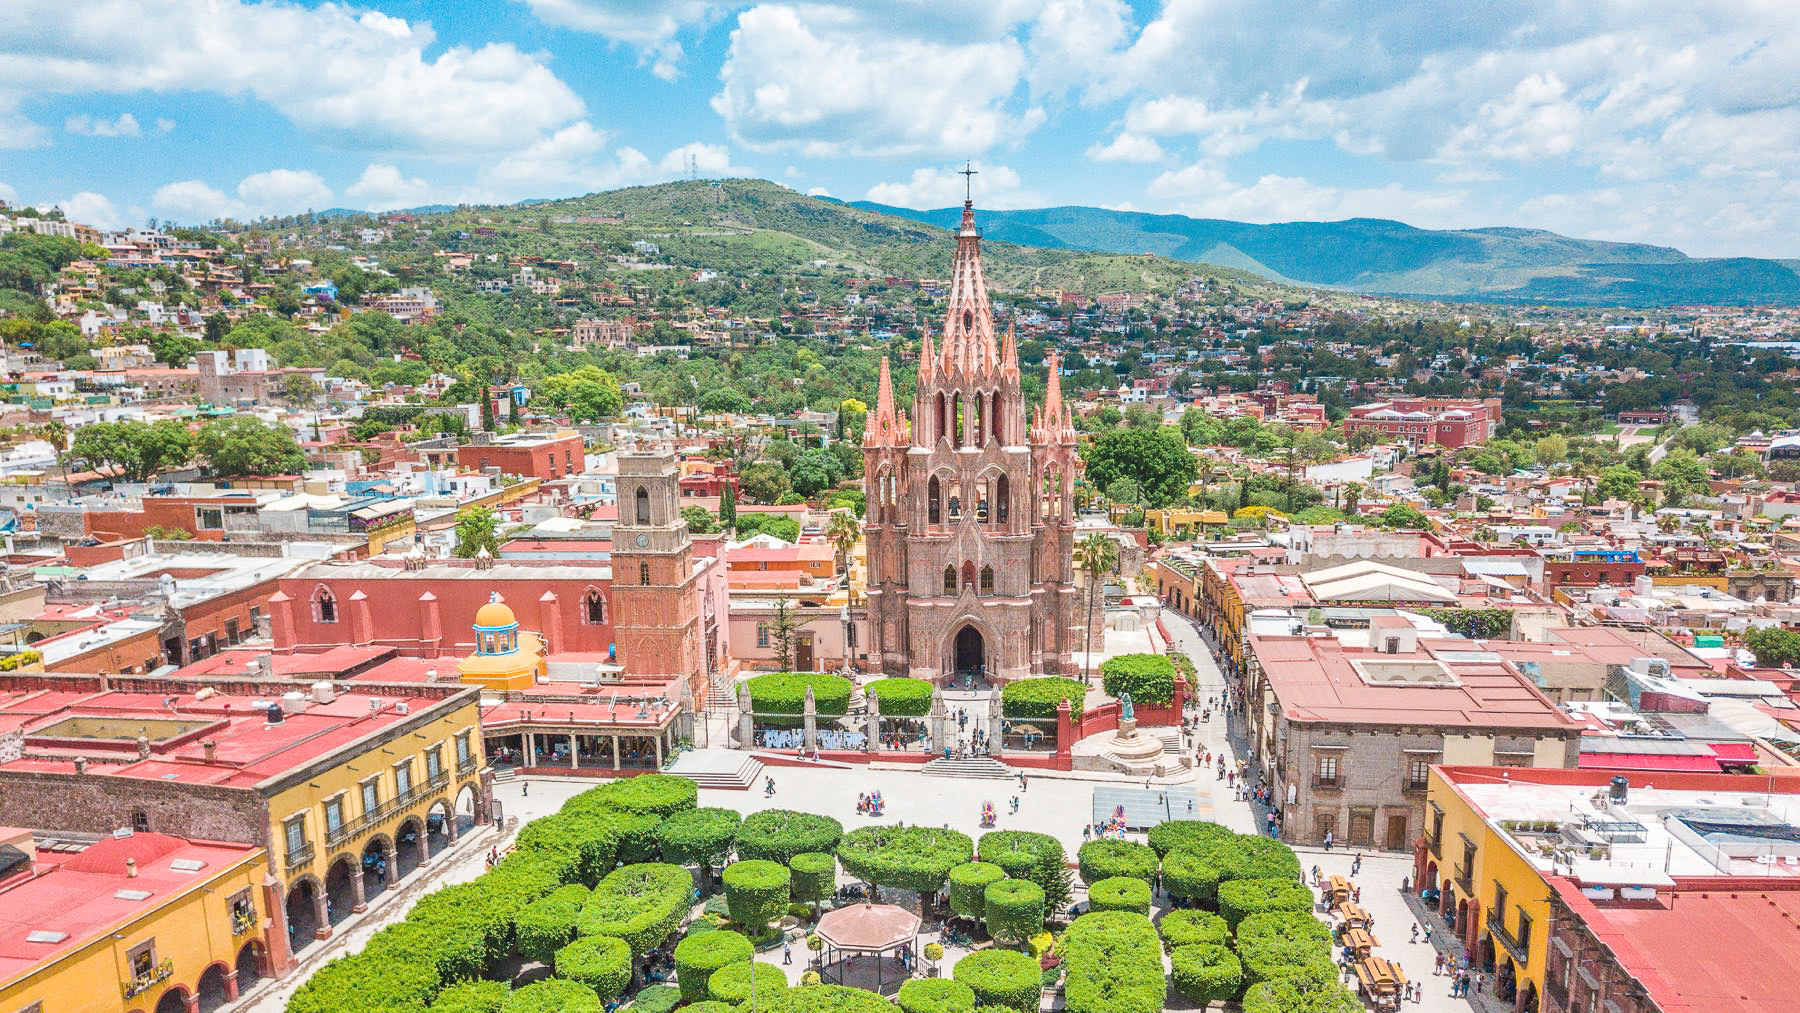 21 Best Things To Do in San Miguel de Allende